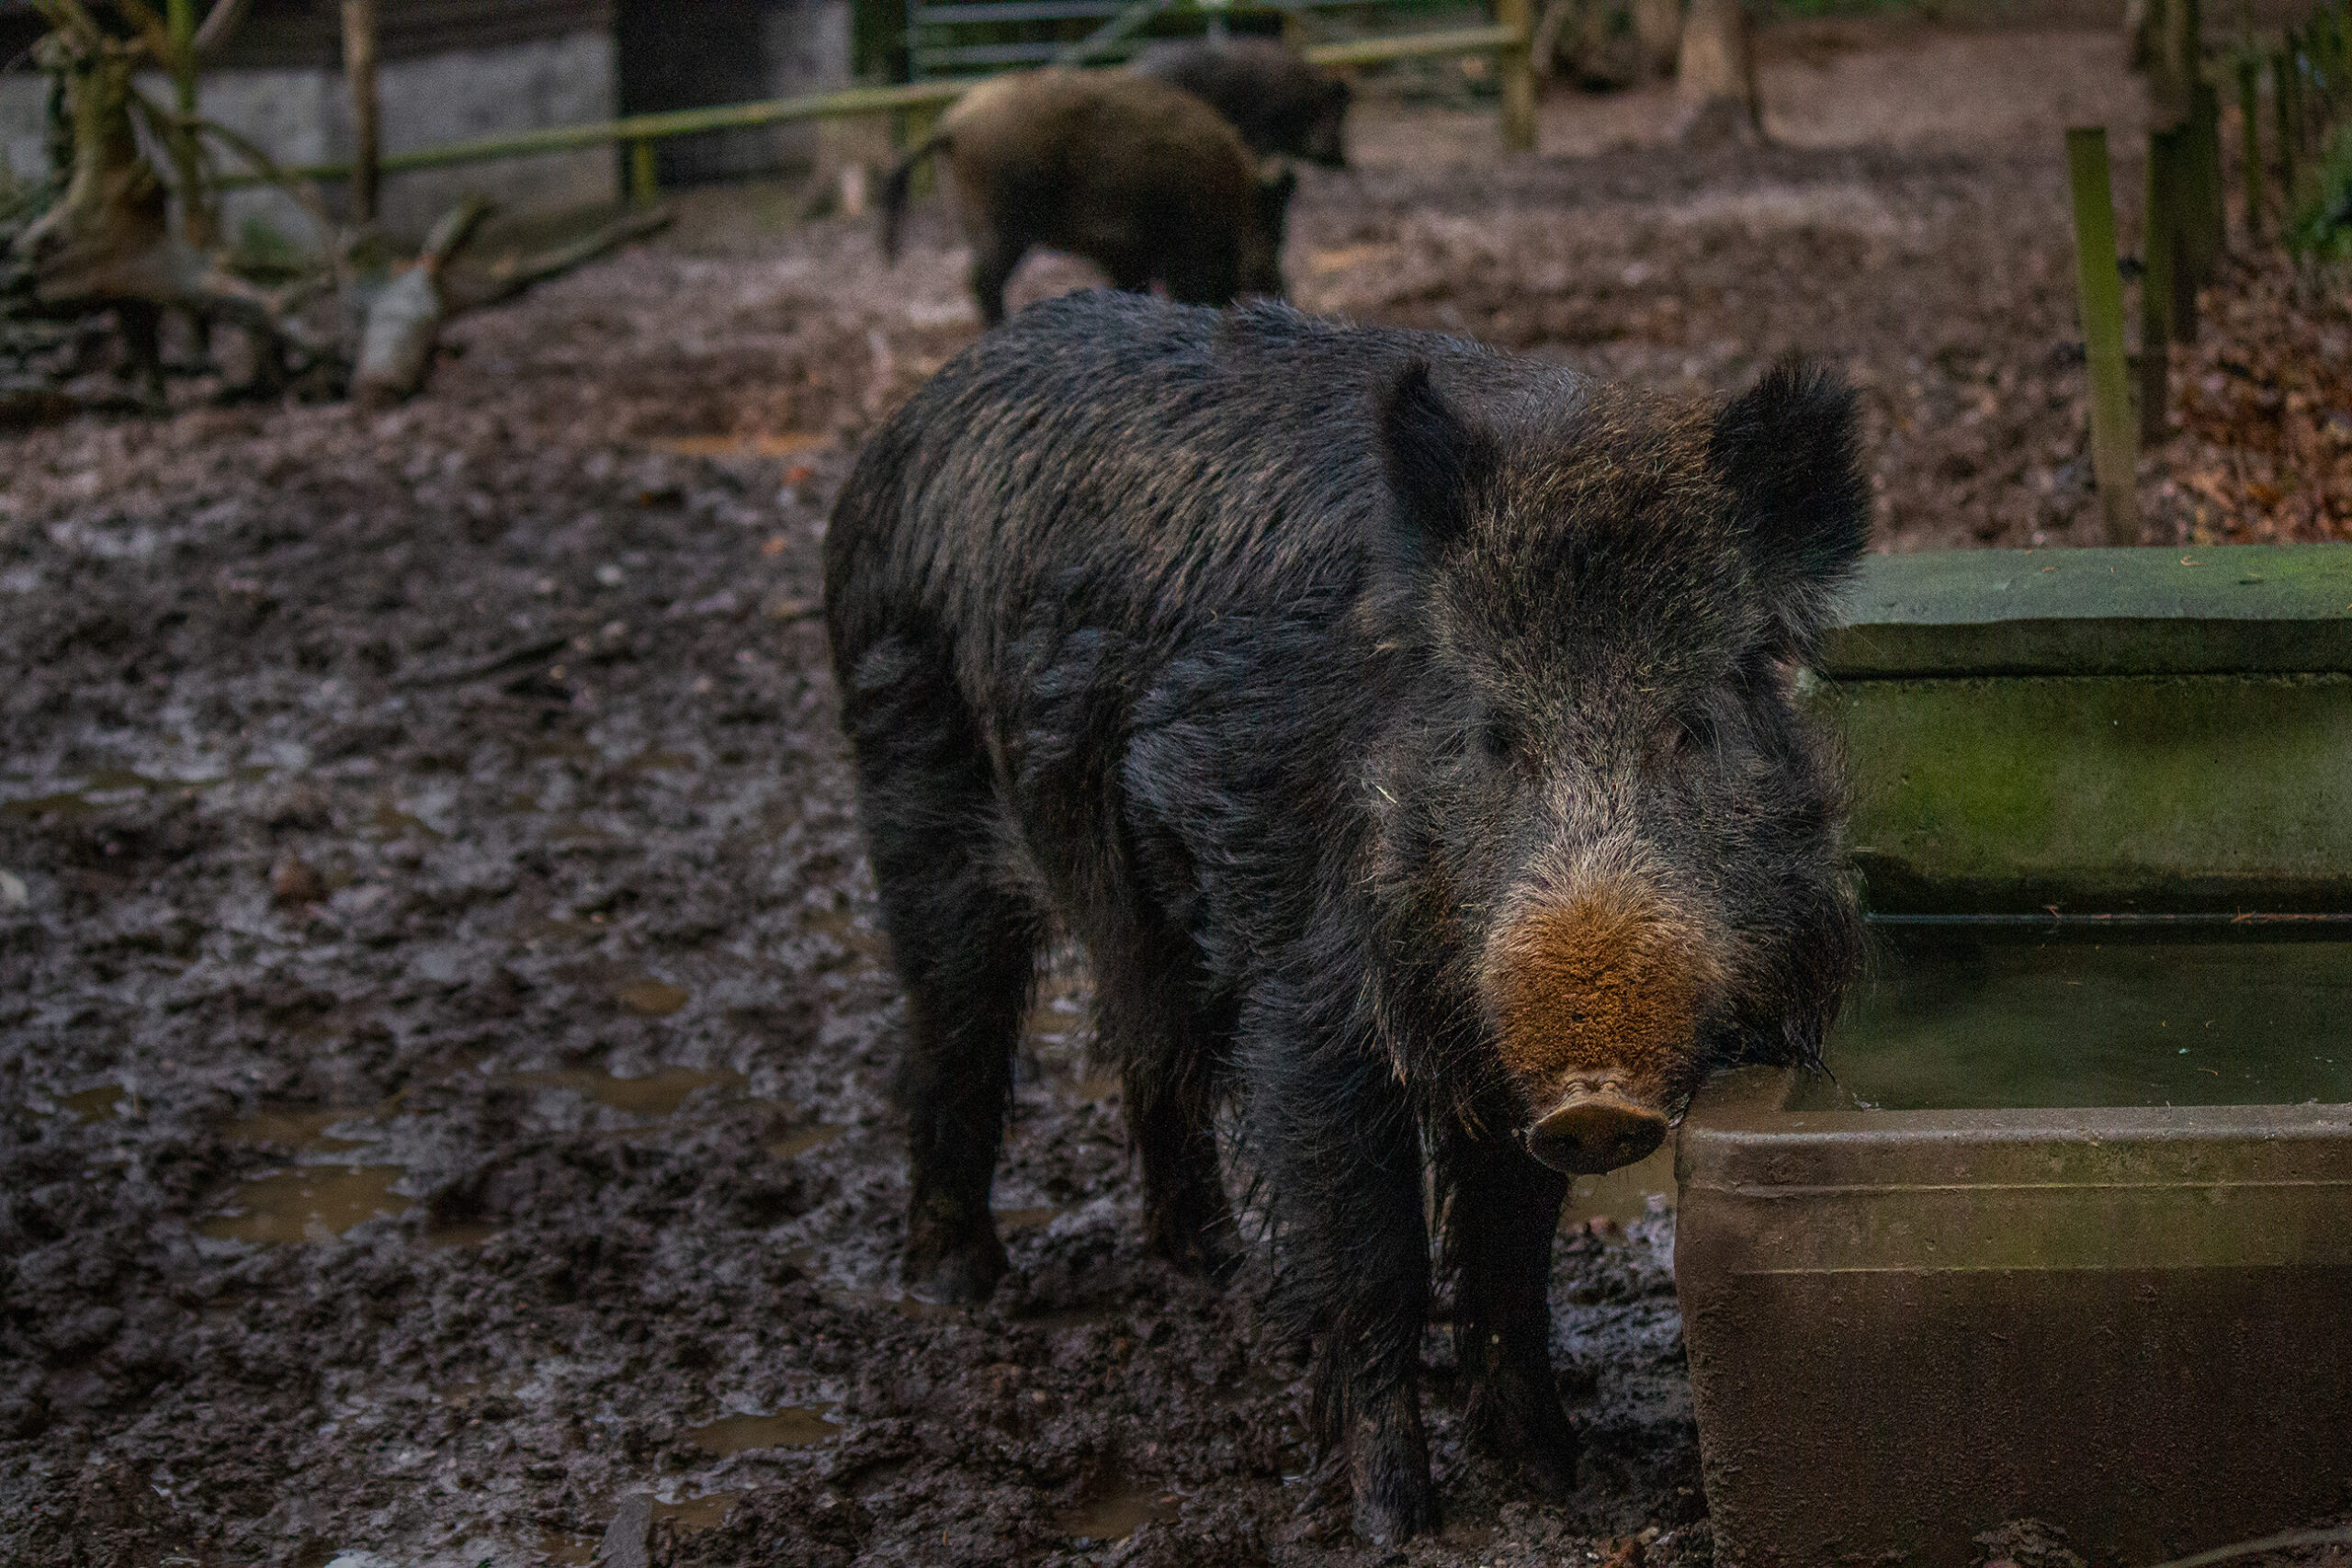 Wild Boar at Wildwood Escot